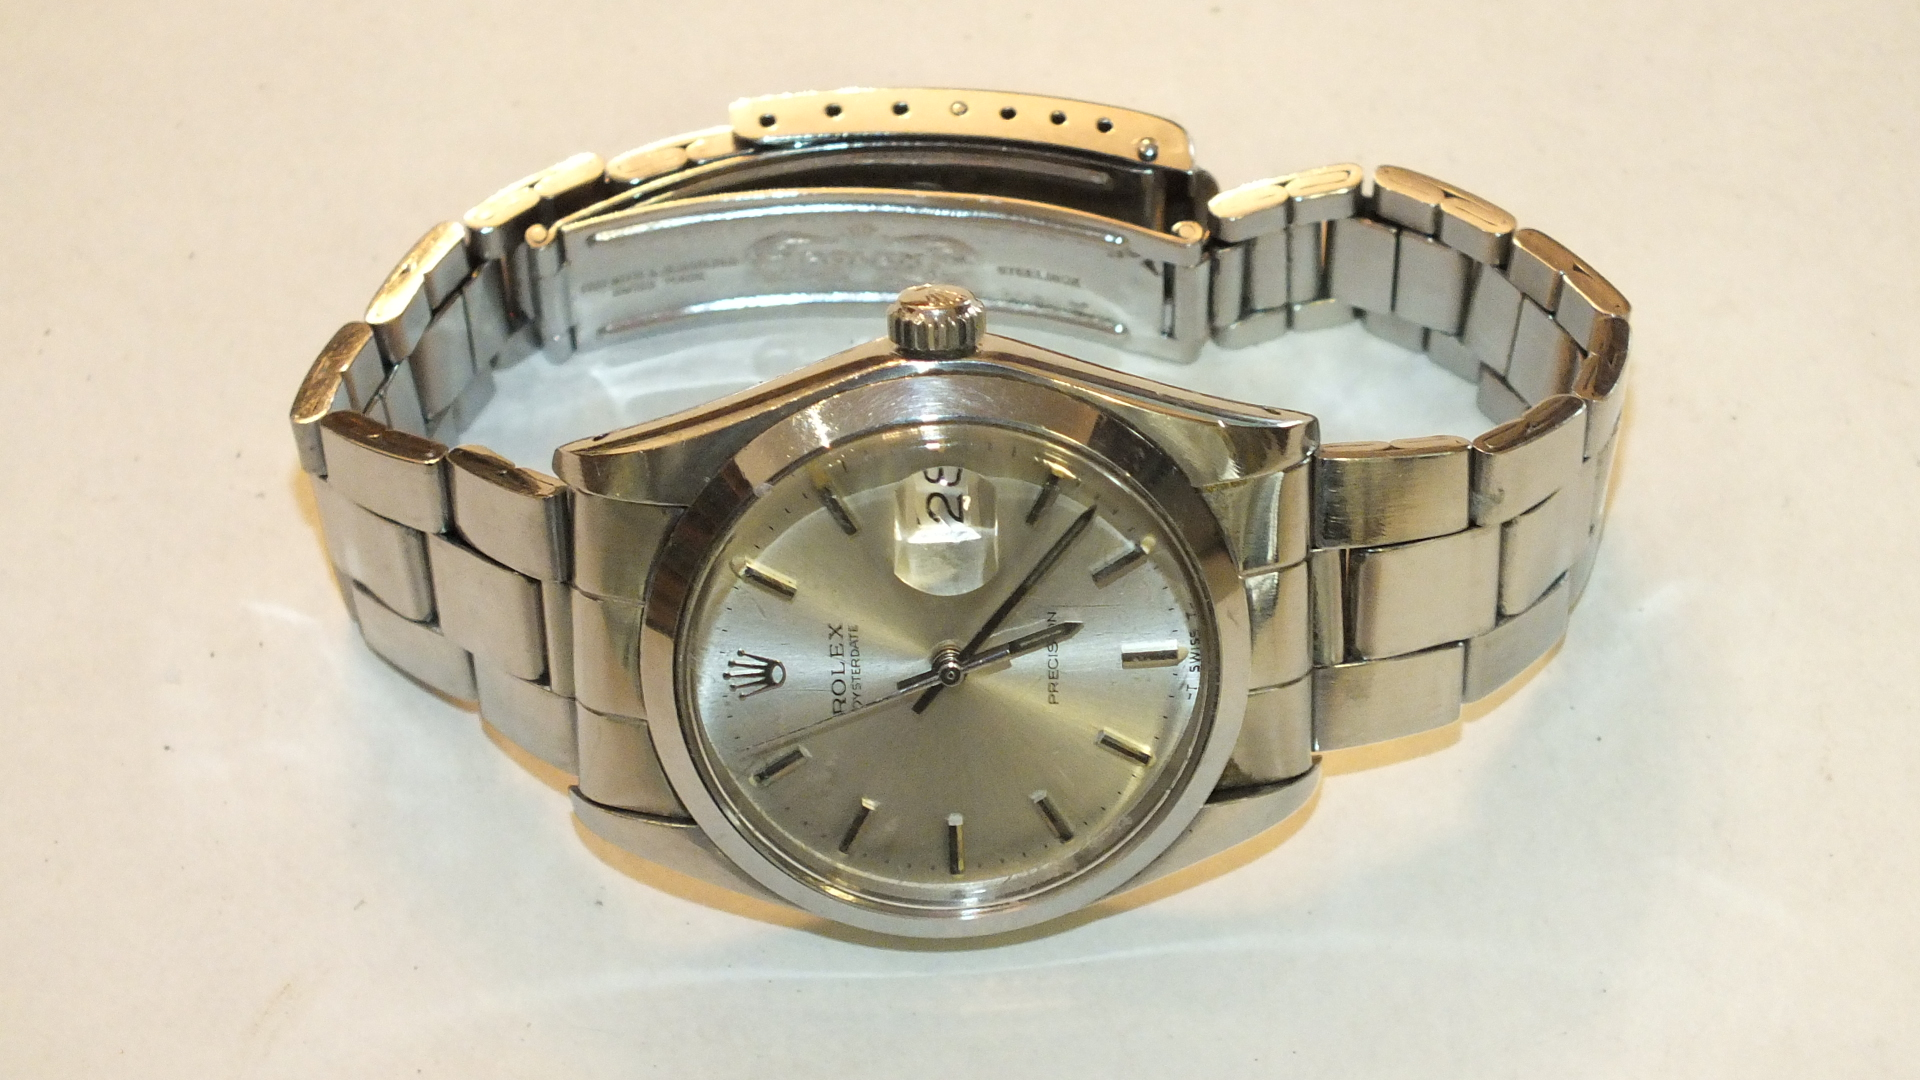 Lot 274 - Rolex, Oysterdate Precision stainless steel wrist watch c1972/3, the circular dial with baton